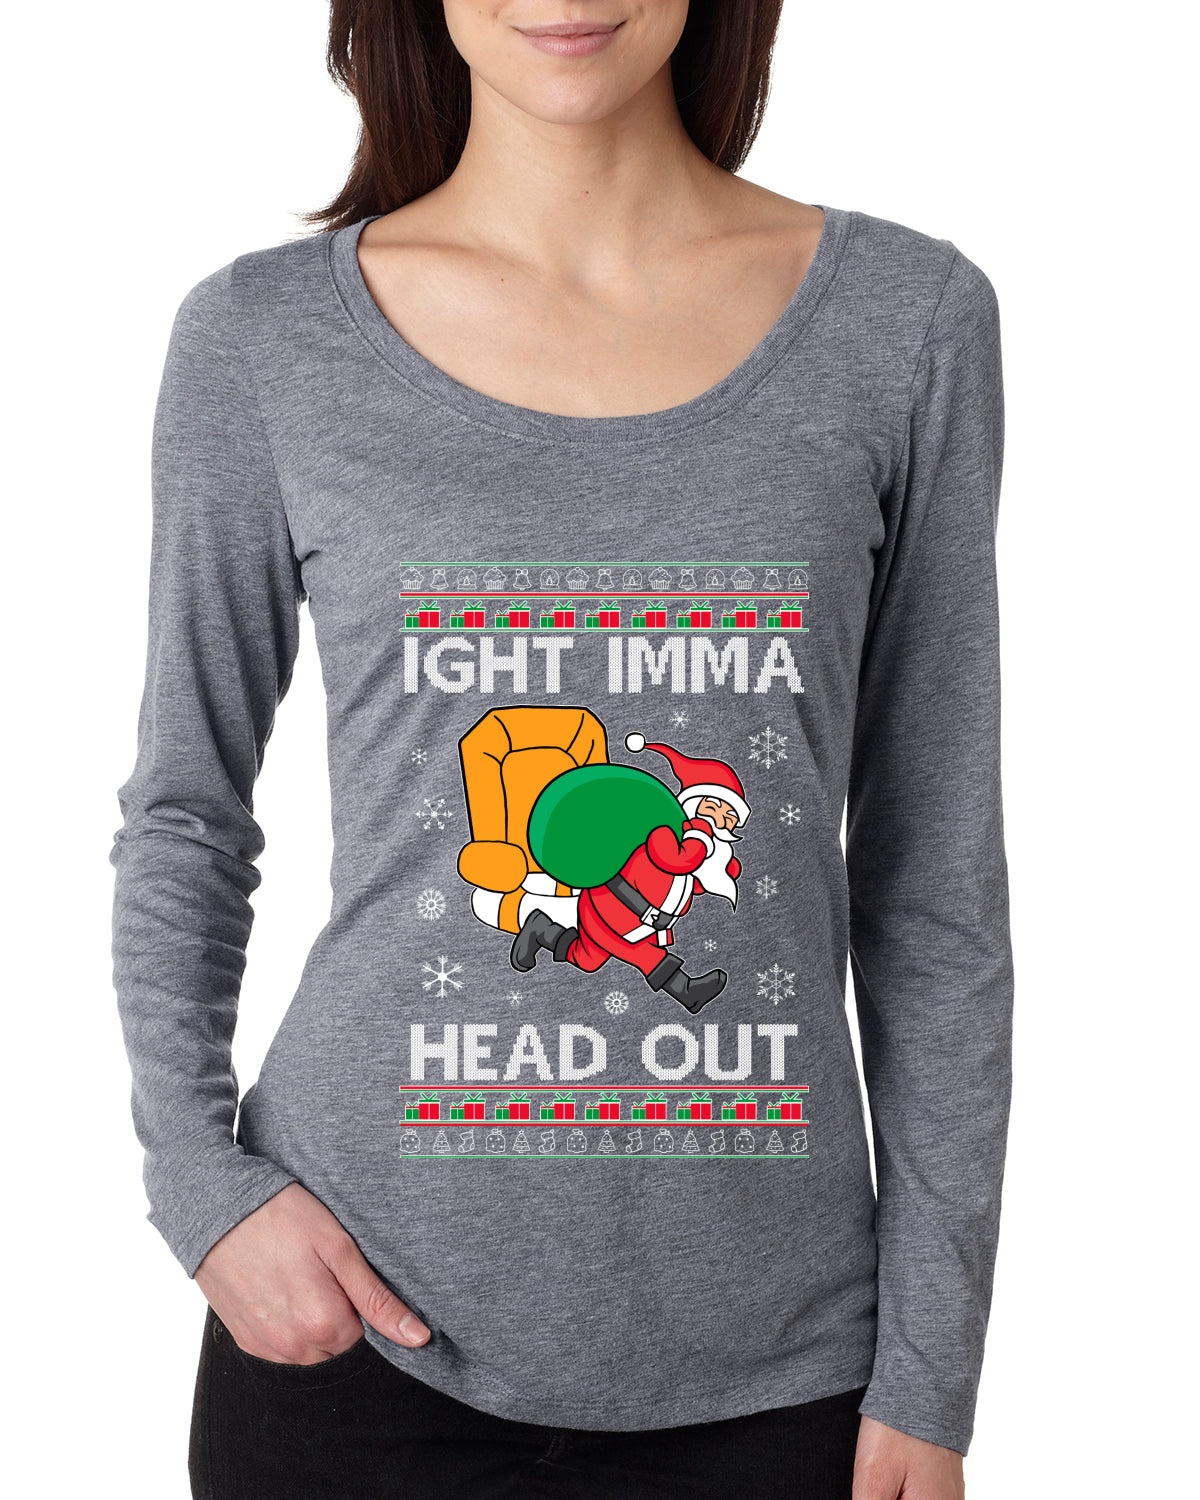 Ight Imma Head Out Funny Santa Xmas Meme Christmas Womens Scoop Long Sleeve Top